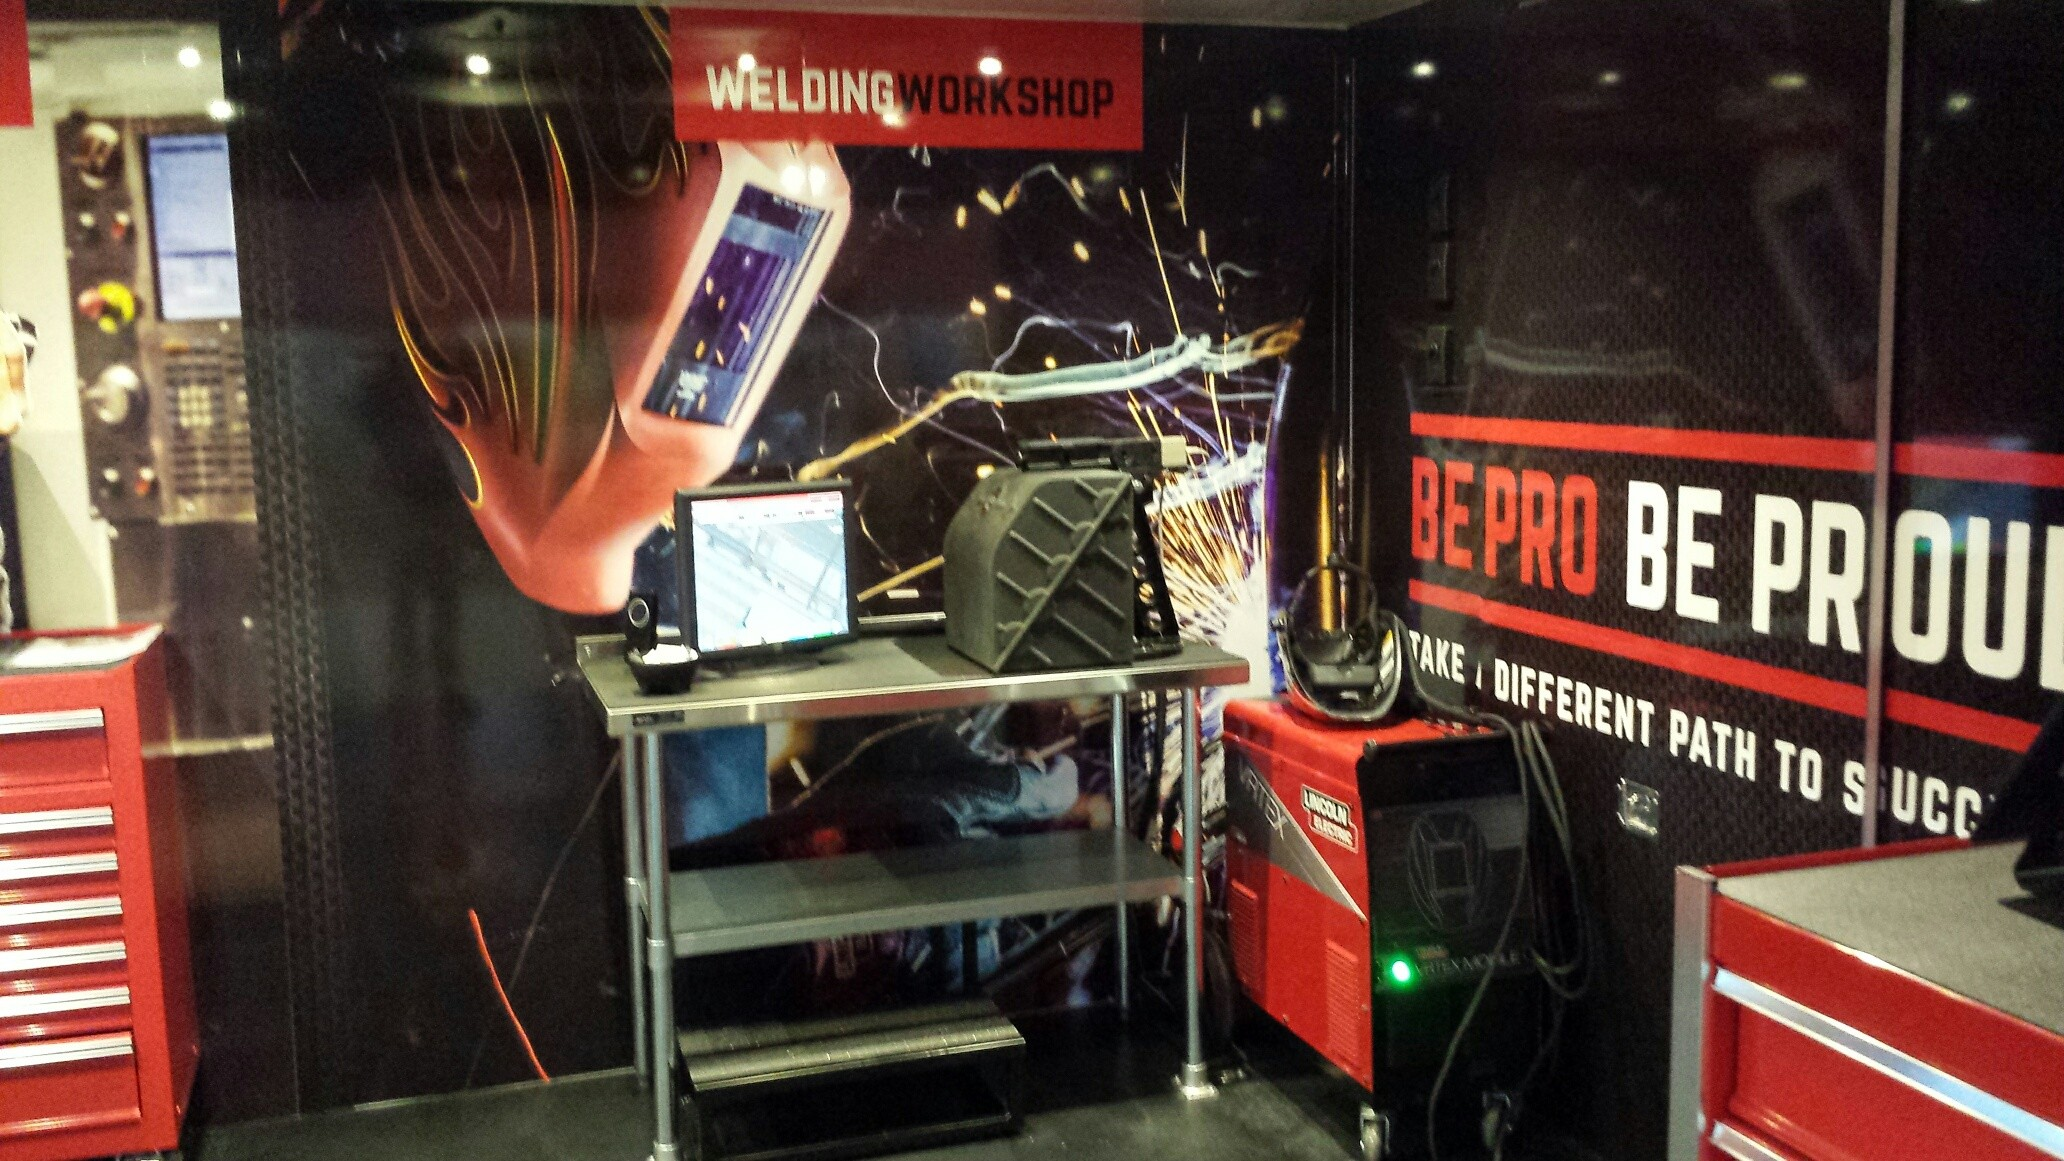 An image of the inside of the Be Pro Be Proud Truck showing welding